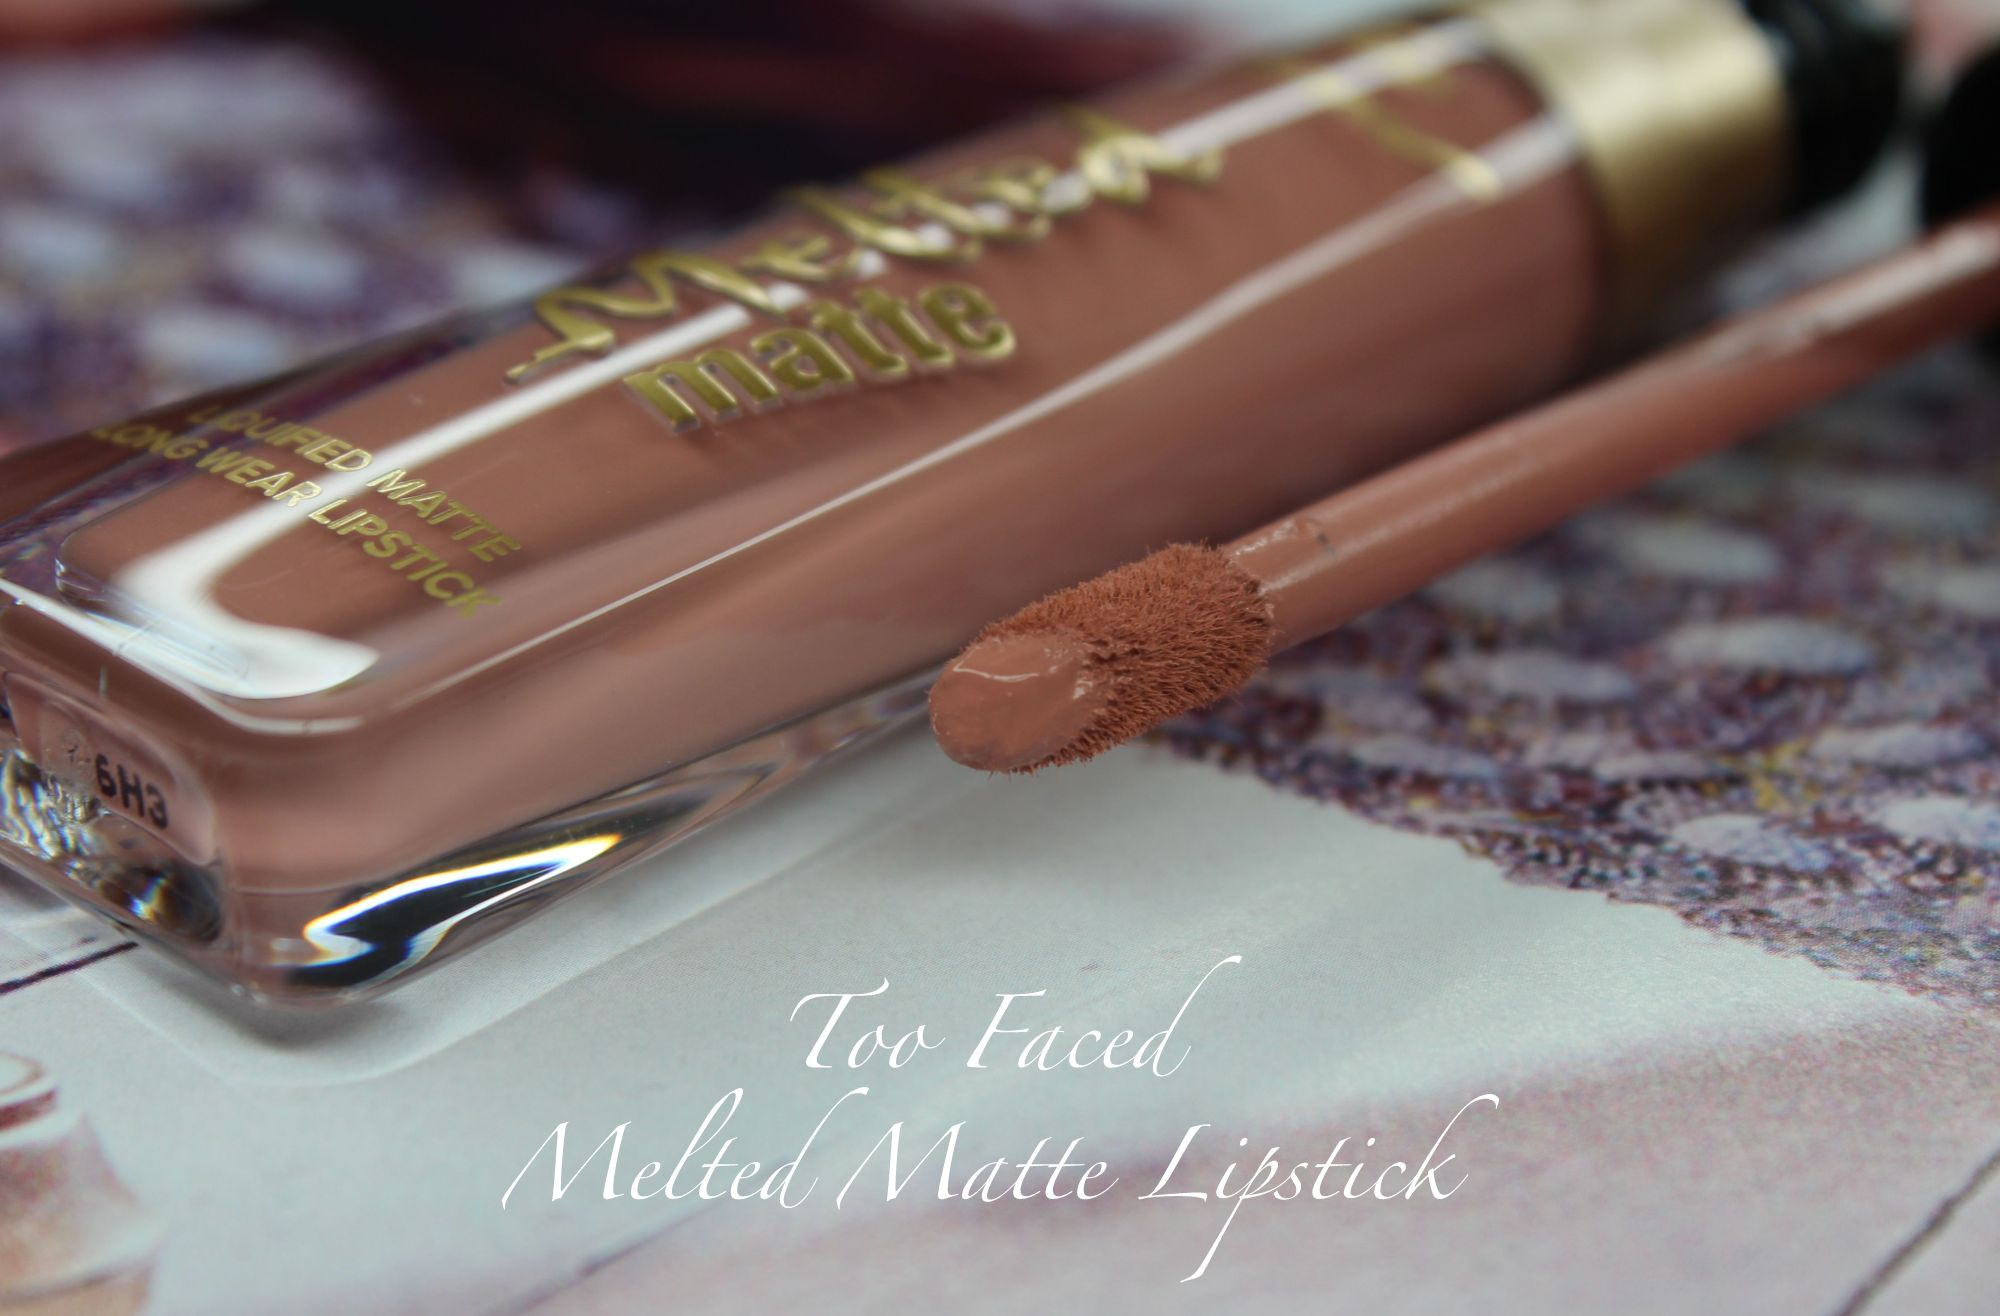 TOP 16 - Too Faced Melted Matte Lipstick in Child Star 2